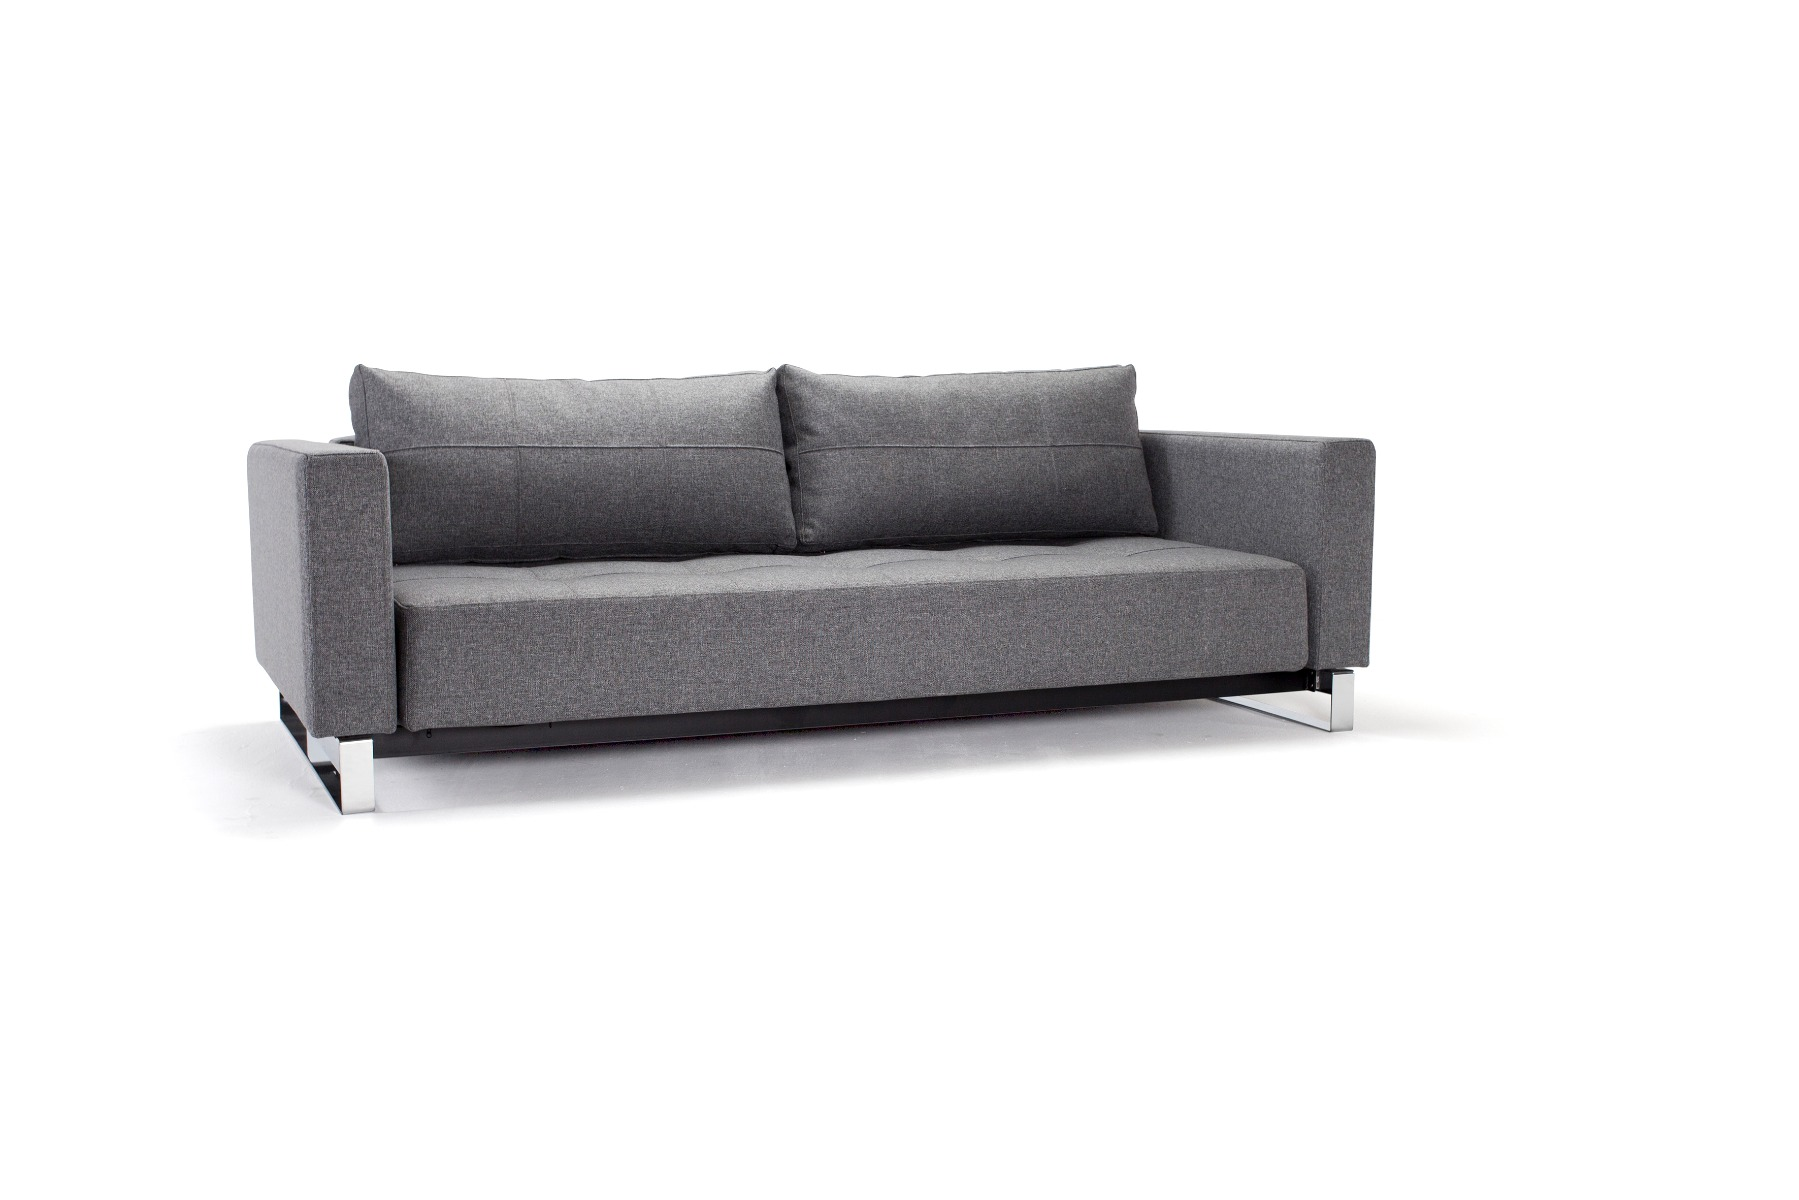 Image of Cassius D.E. Lounger - Twist Charcoal (4902)